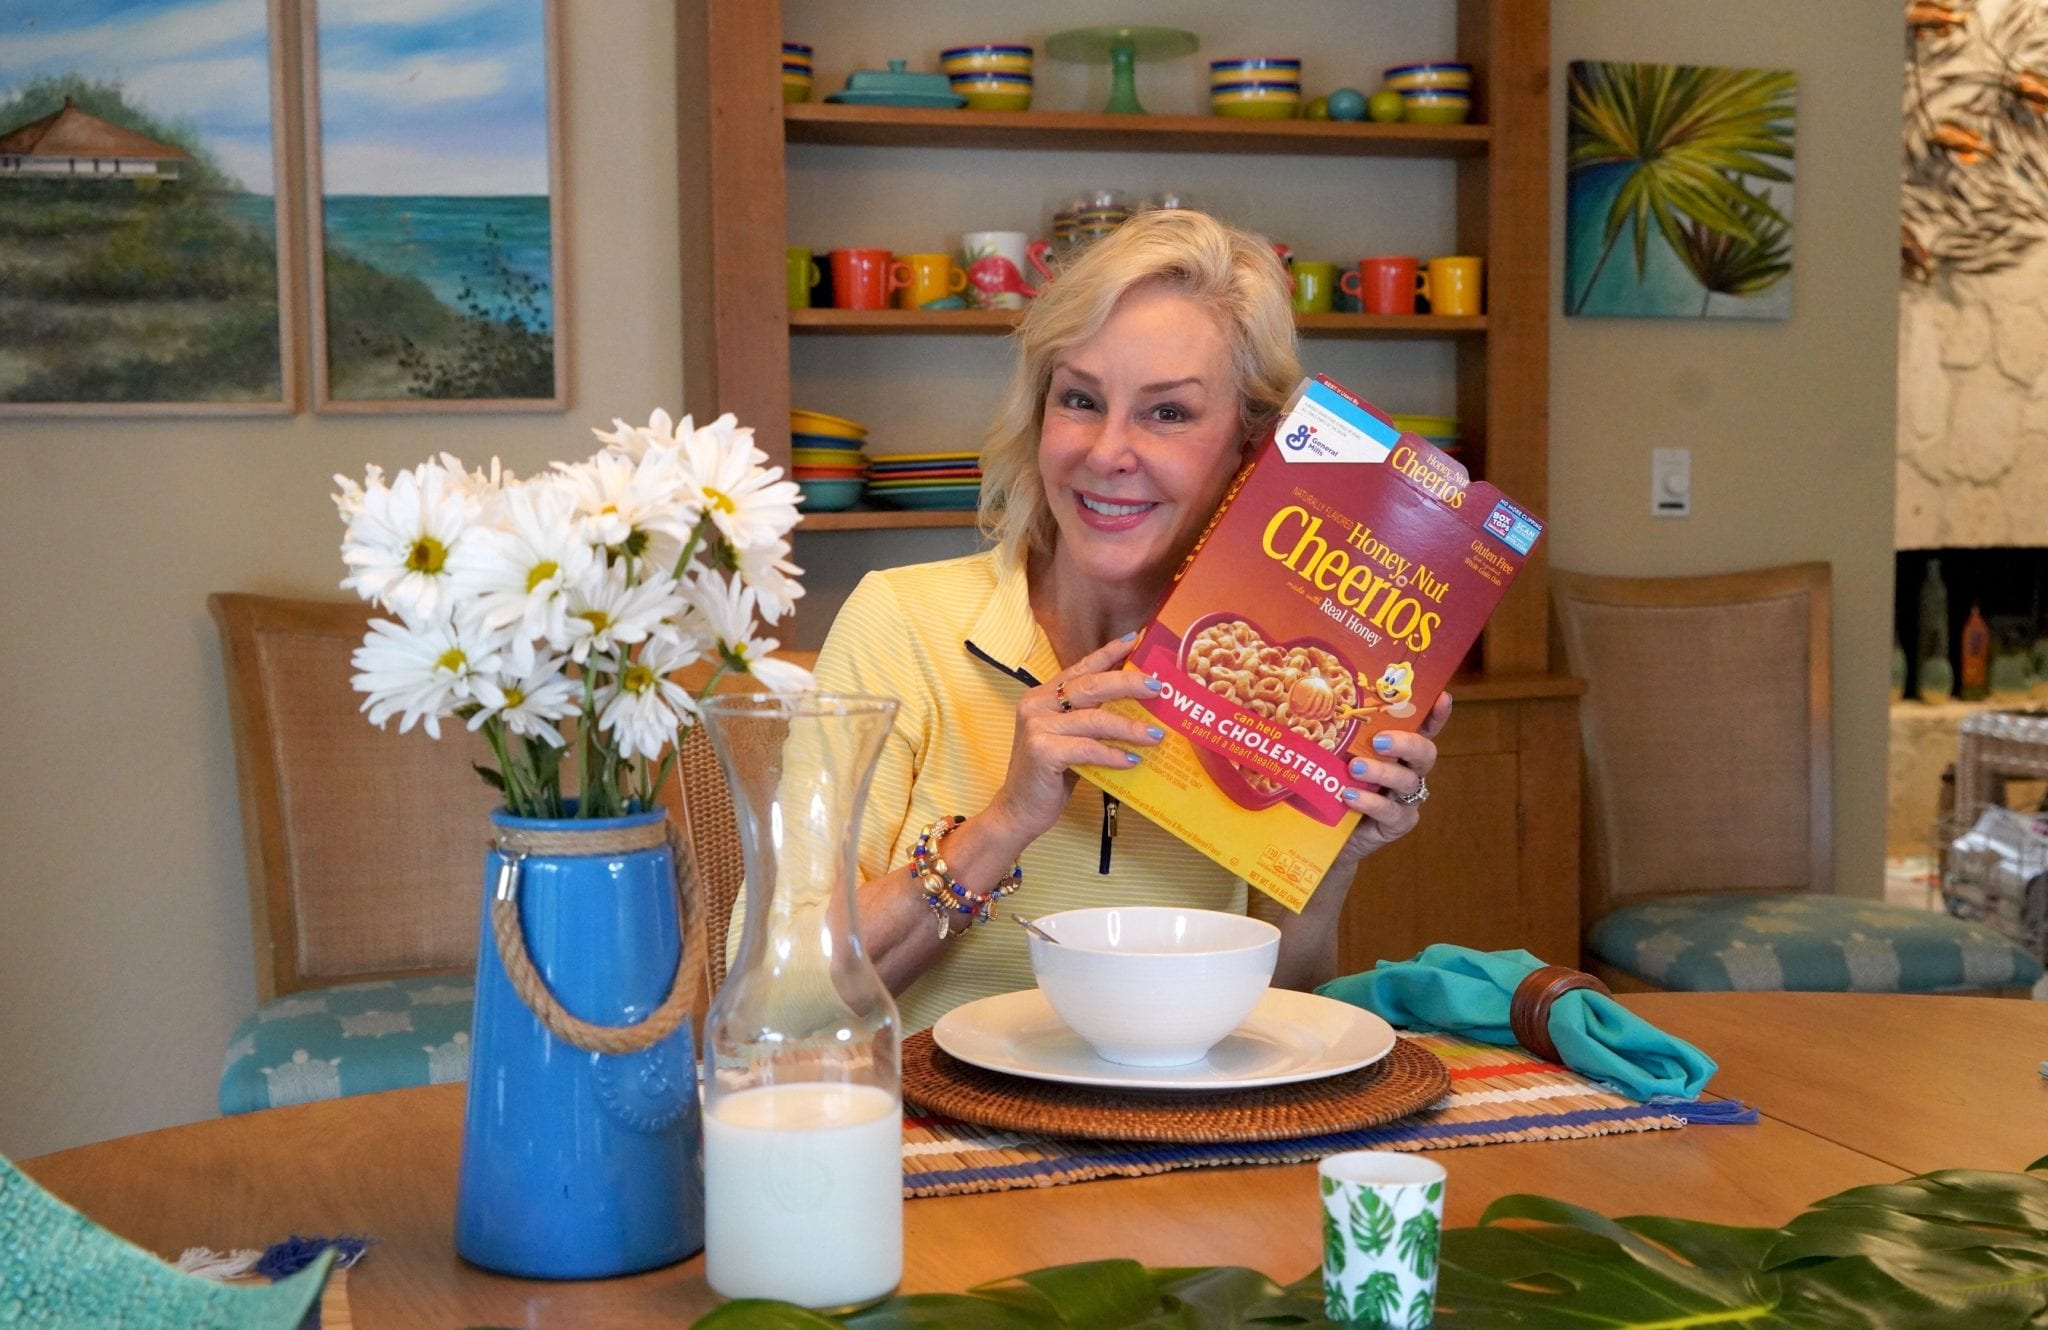 SheSheShow at breakfast table pointing at Cheerio's box